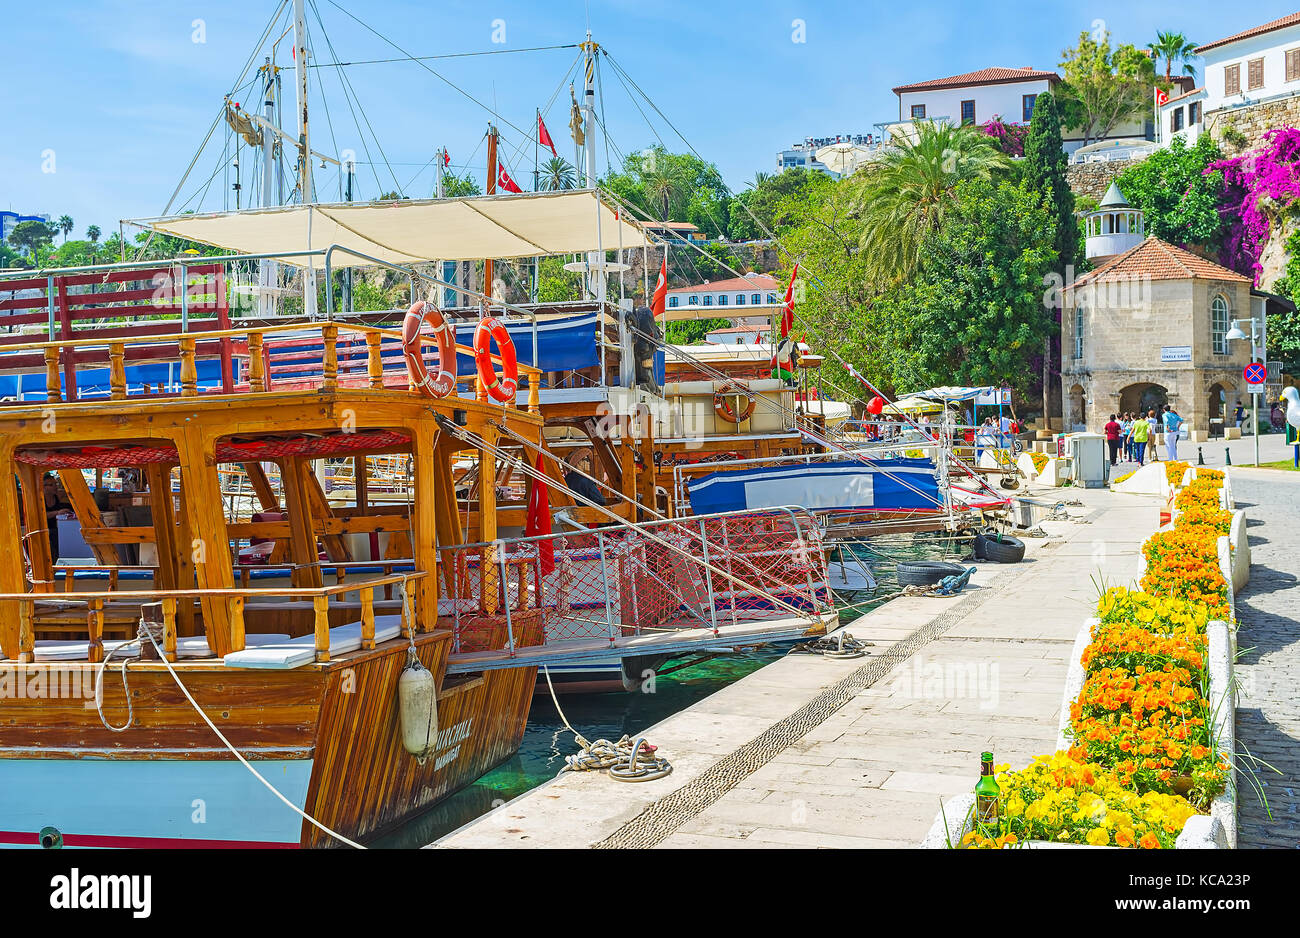 ANTALYA, TURKEY - MAY 12, 2017: The walk along the tourist boats in old marina with a view on historic Iskele Mosque, - Stock Image